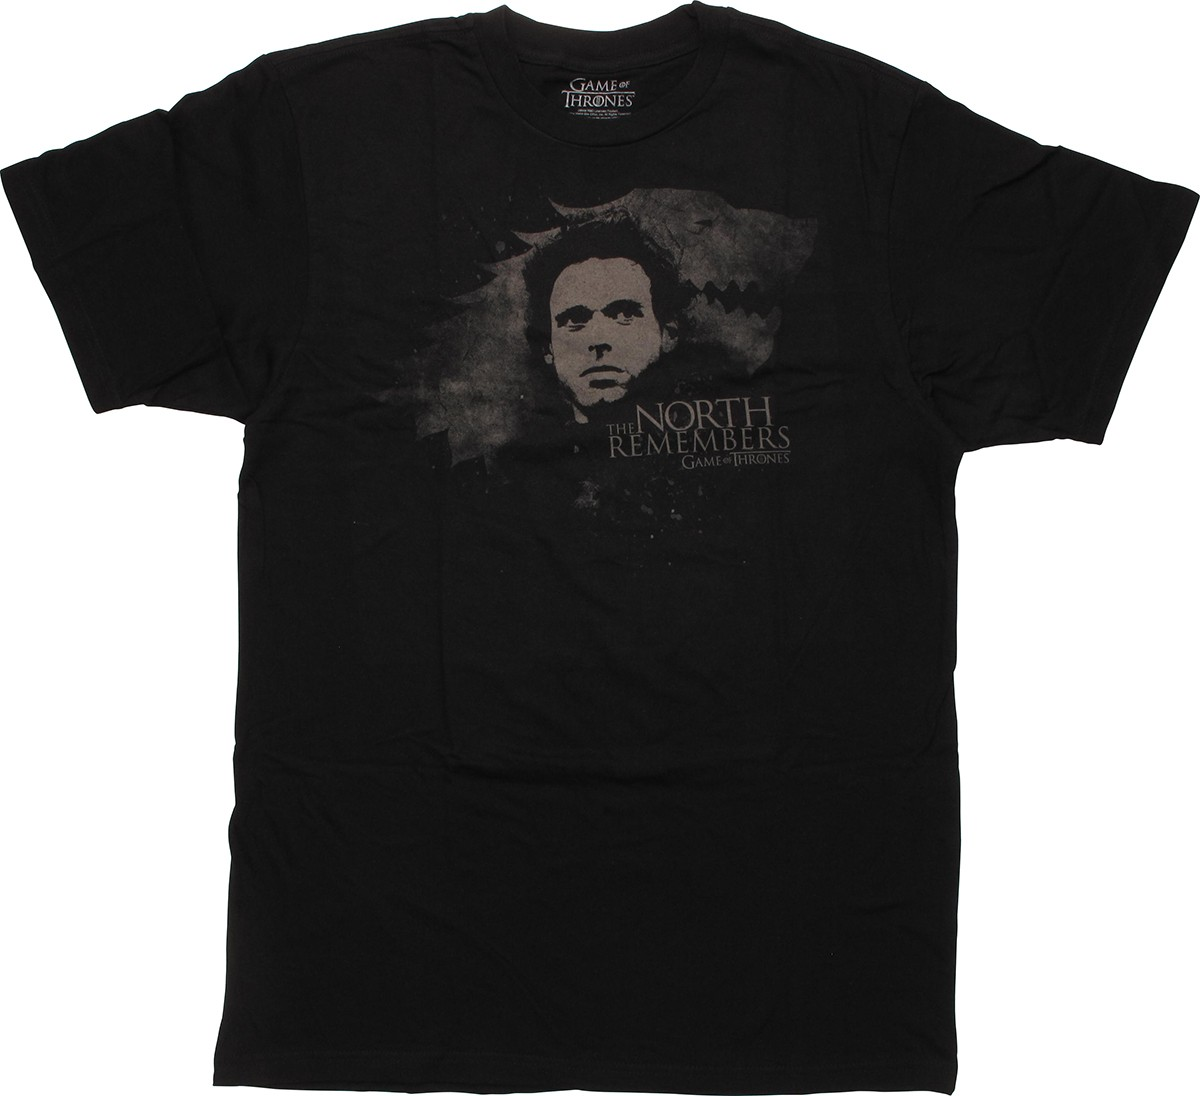 game of thrones north remembers t shirt sheer. Black Bedroom Furniture Sets. Home Design Ideas